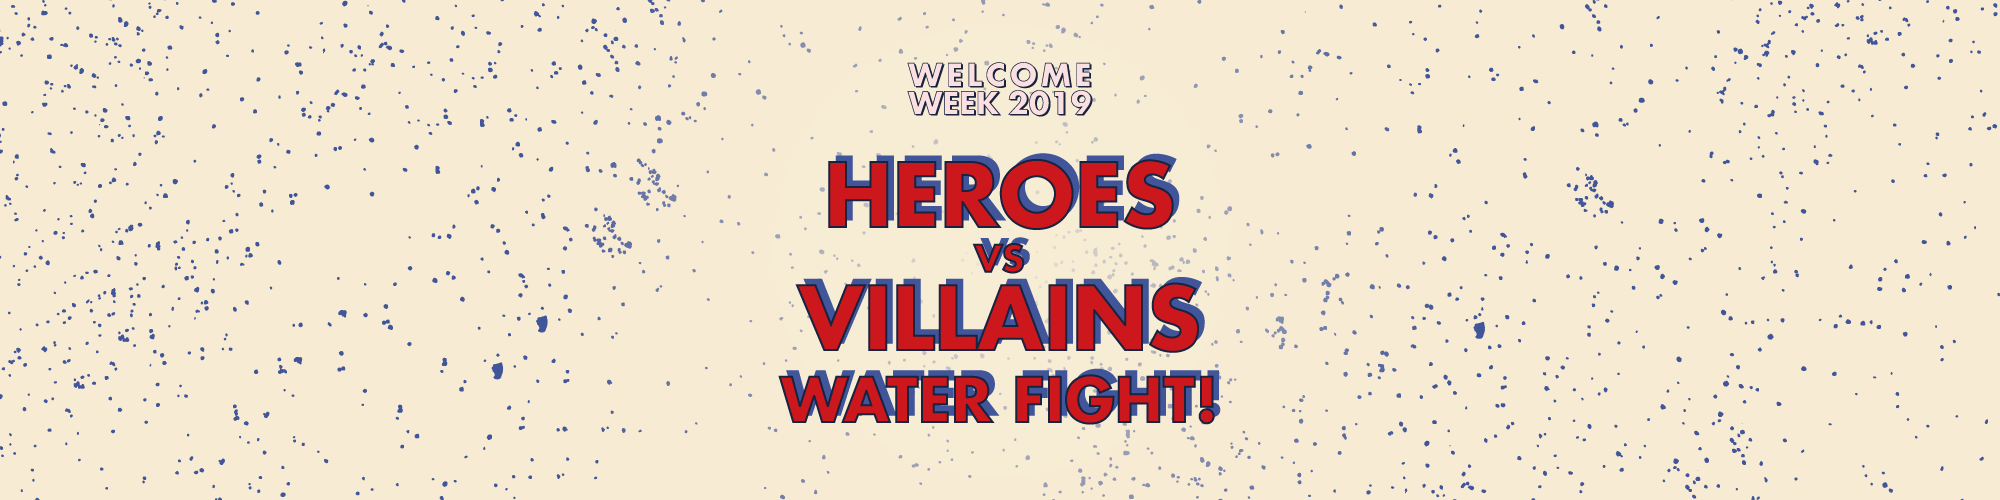 Heroes vs Villains Water Fight!